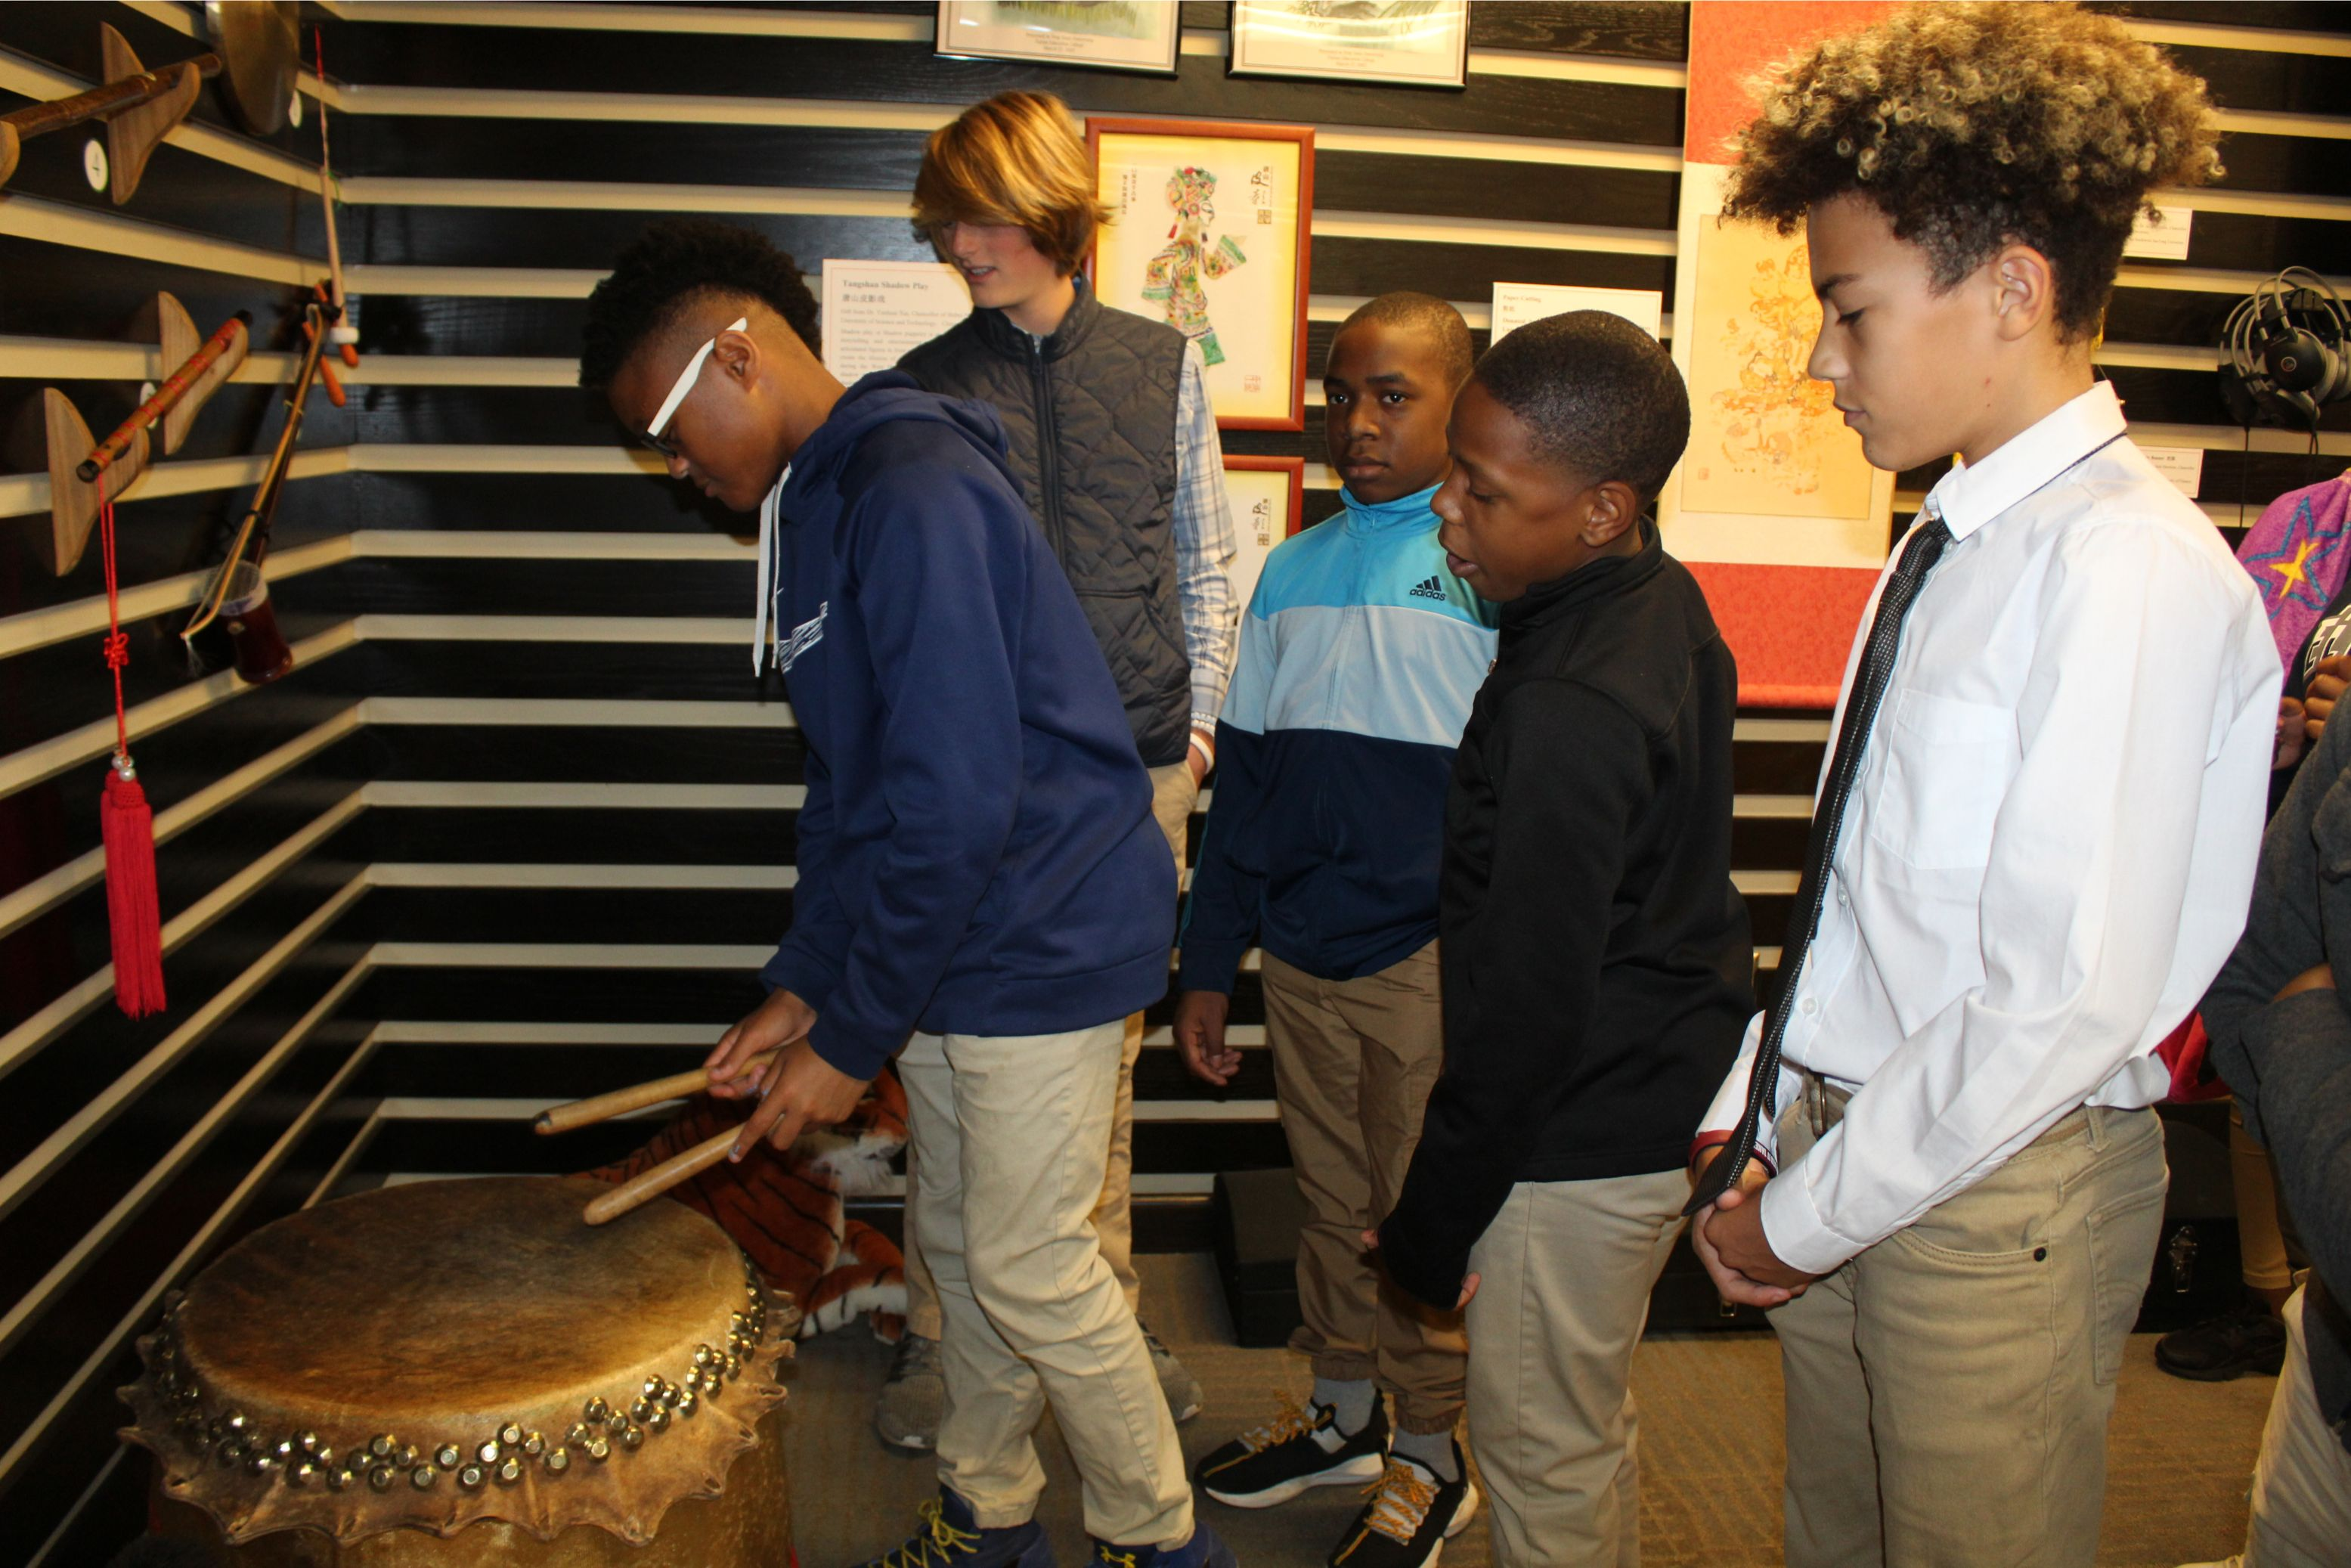 A group of boys play drums together in the exhibition hall.